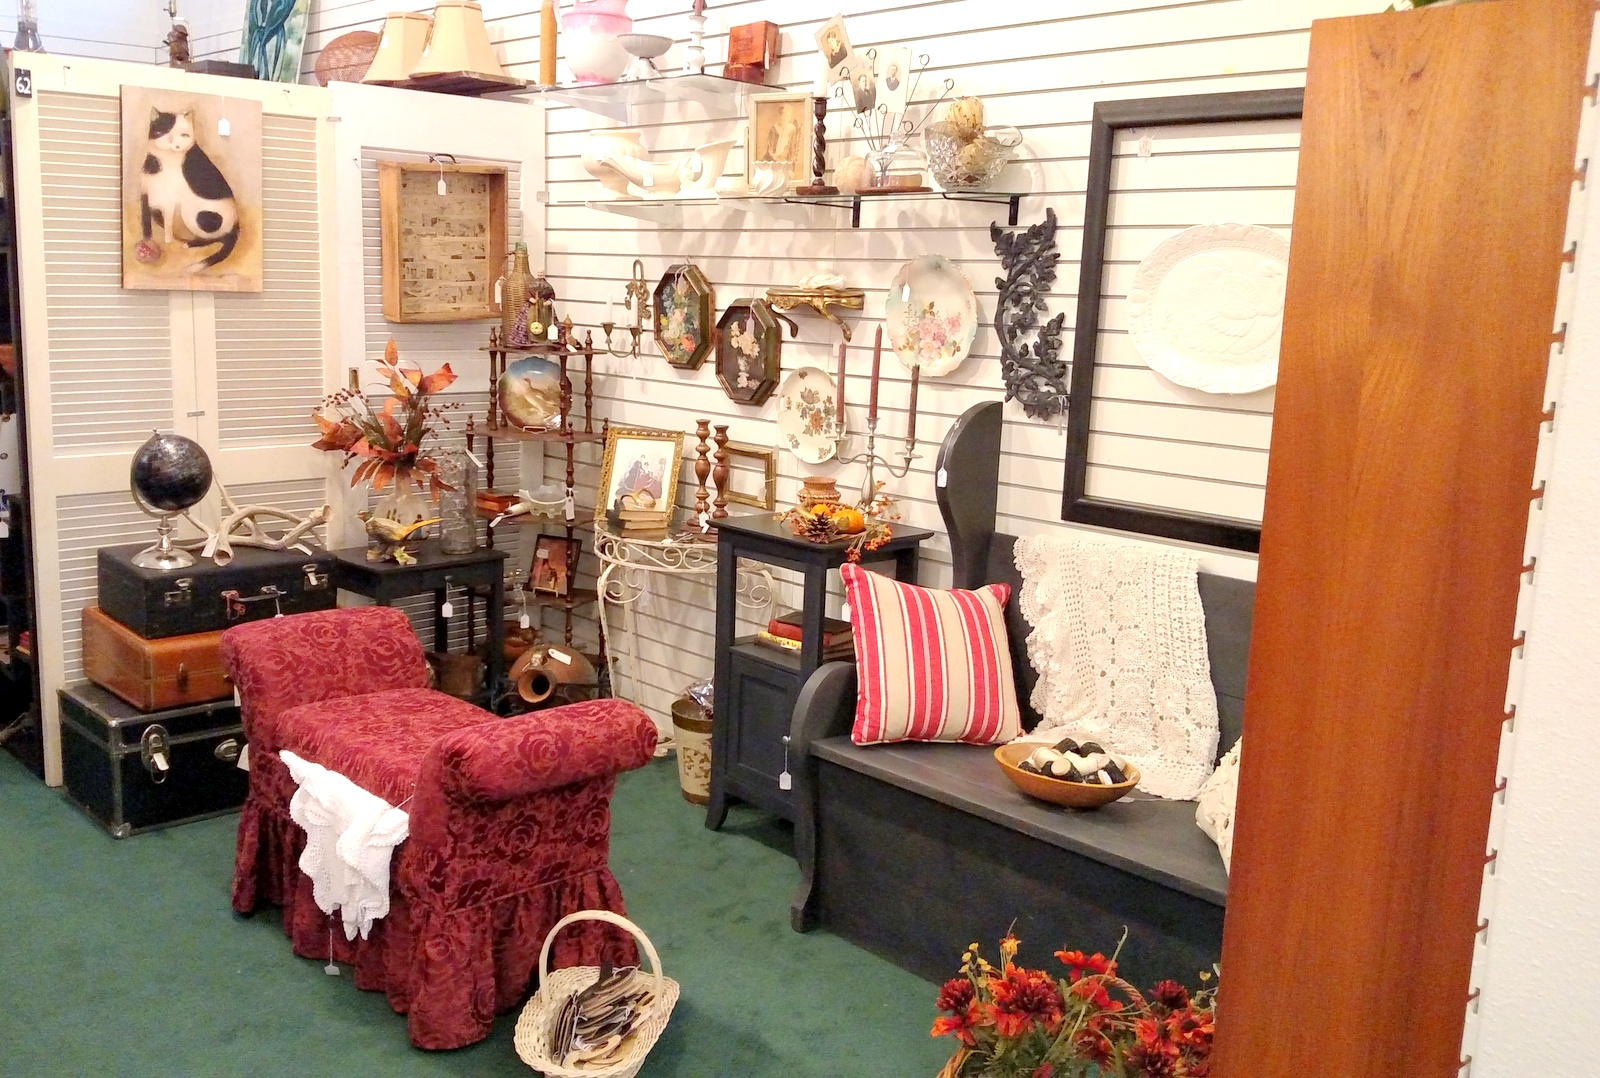 Curiosities Vintage Mall: Charlotte's Web Antiques